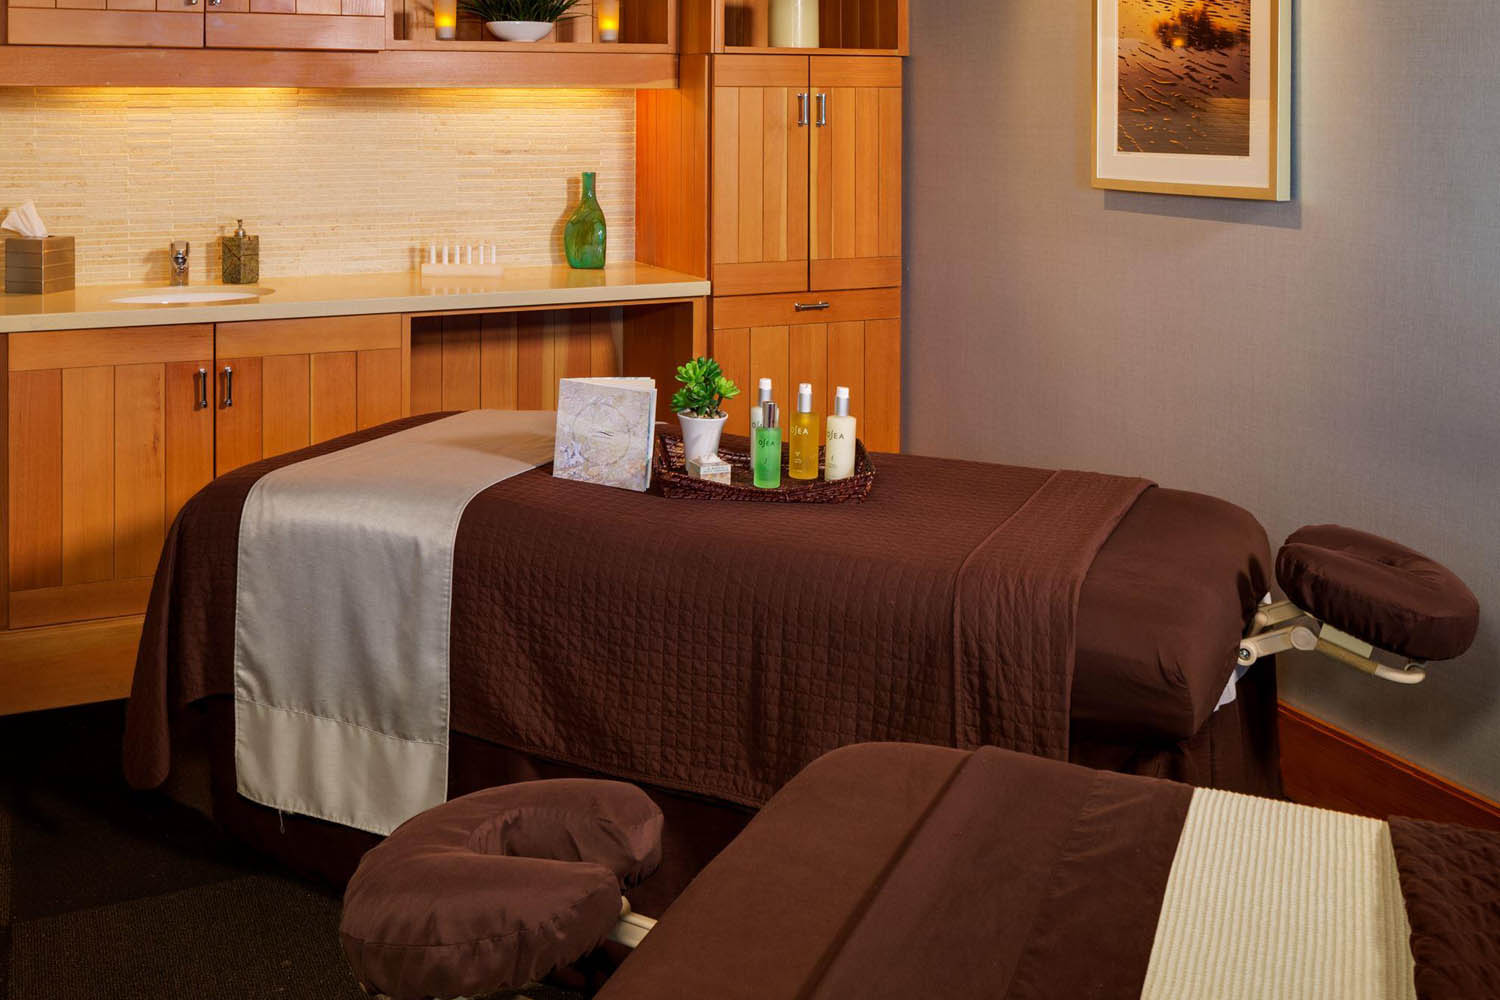 Massage table at the resort spa